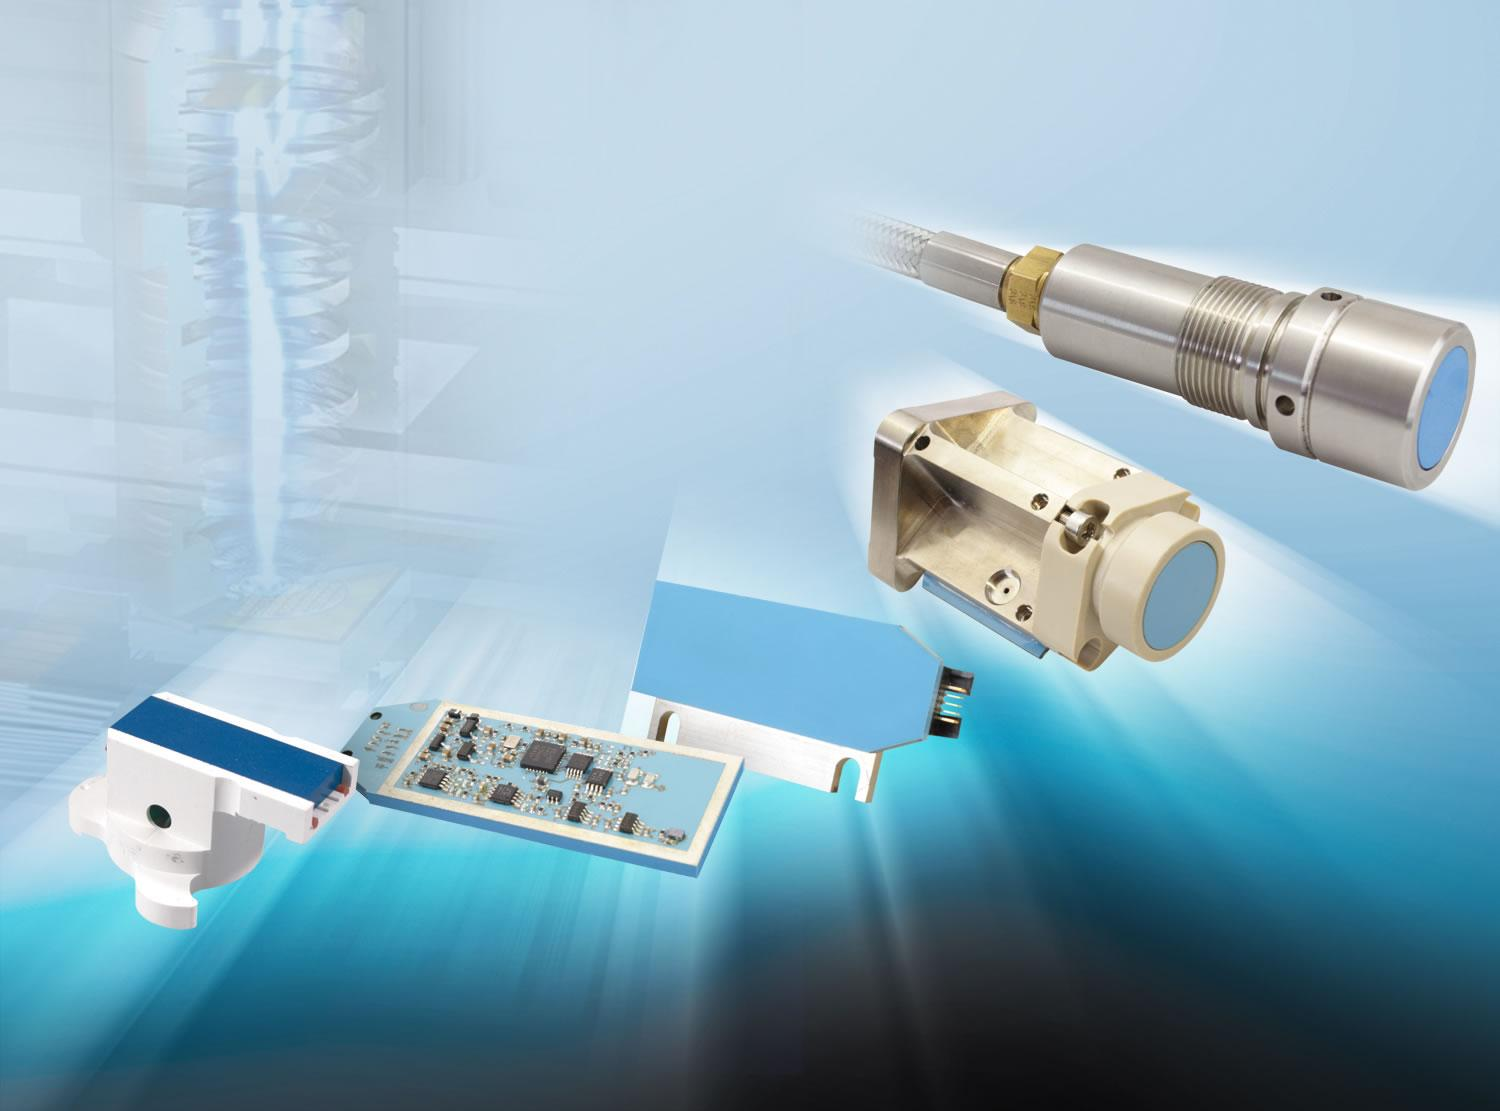 Next-generation eddyECT sensors, the only eddy current sensors in the world to use embedded coil technology